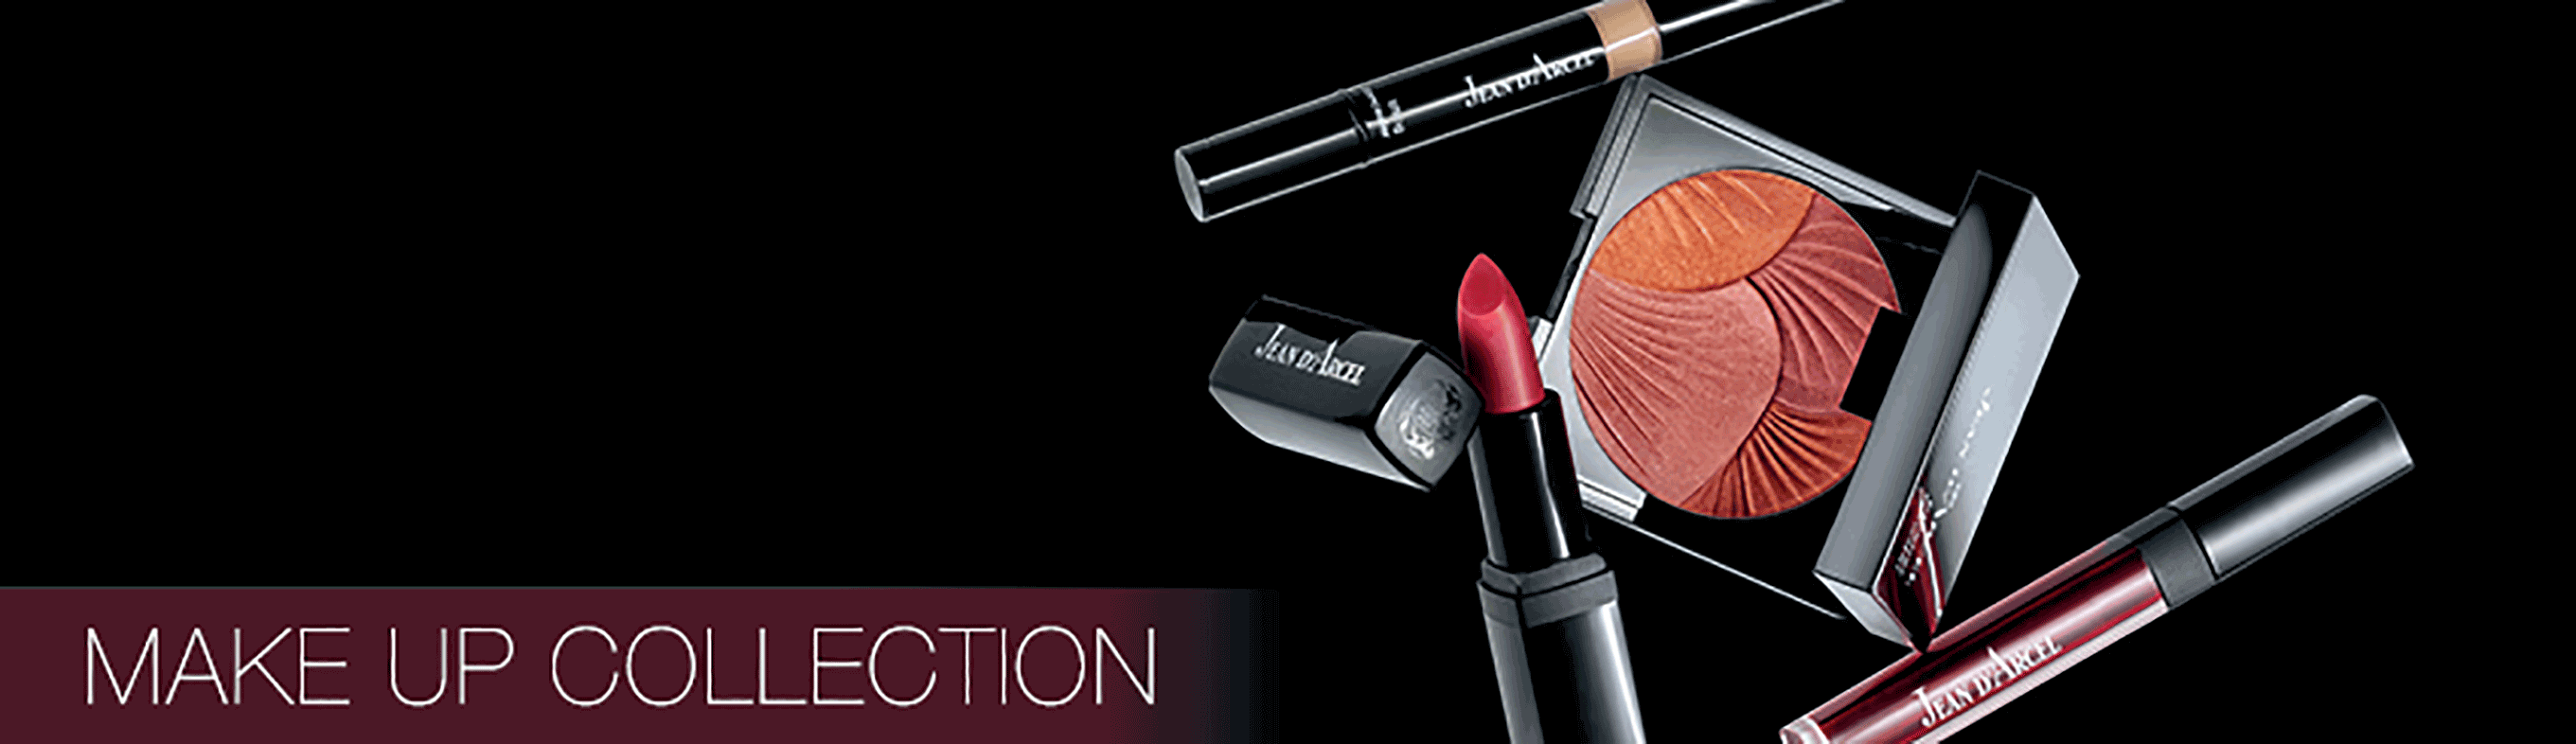 make-up-collection_1